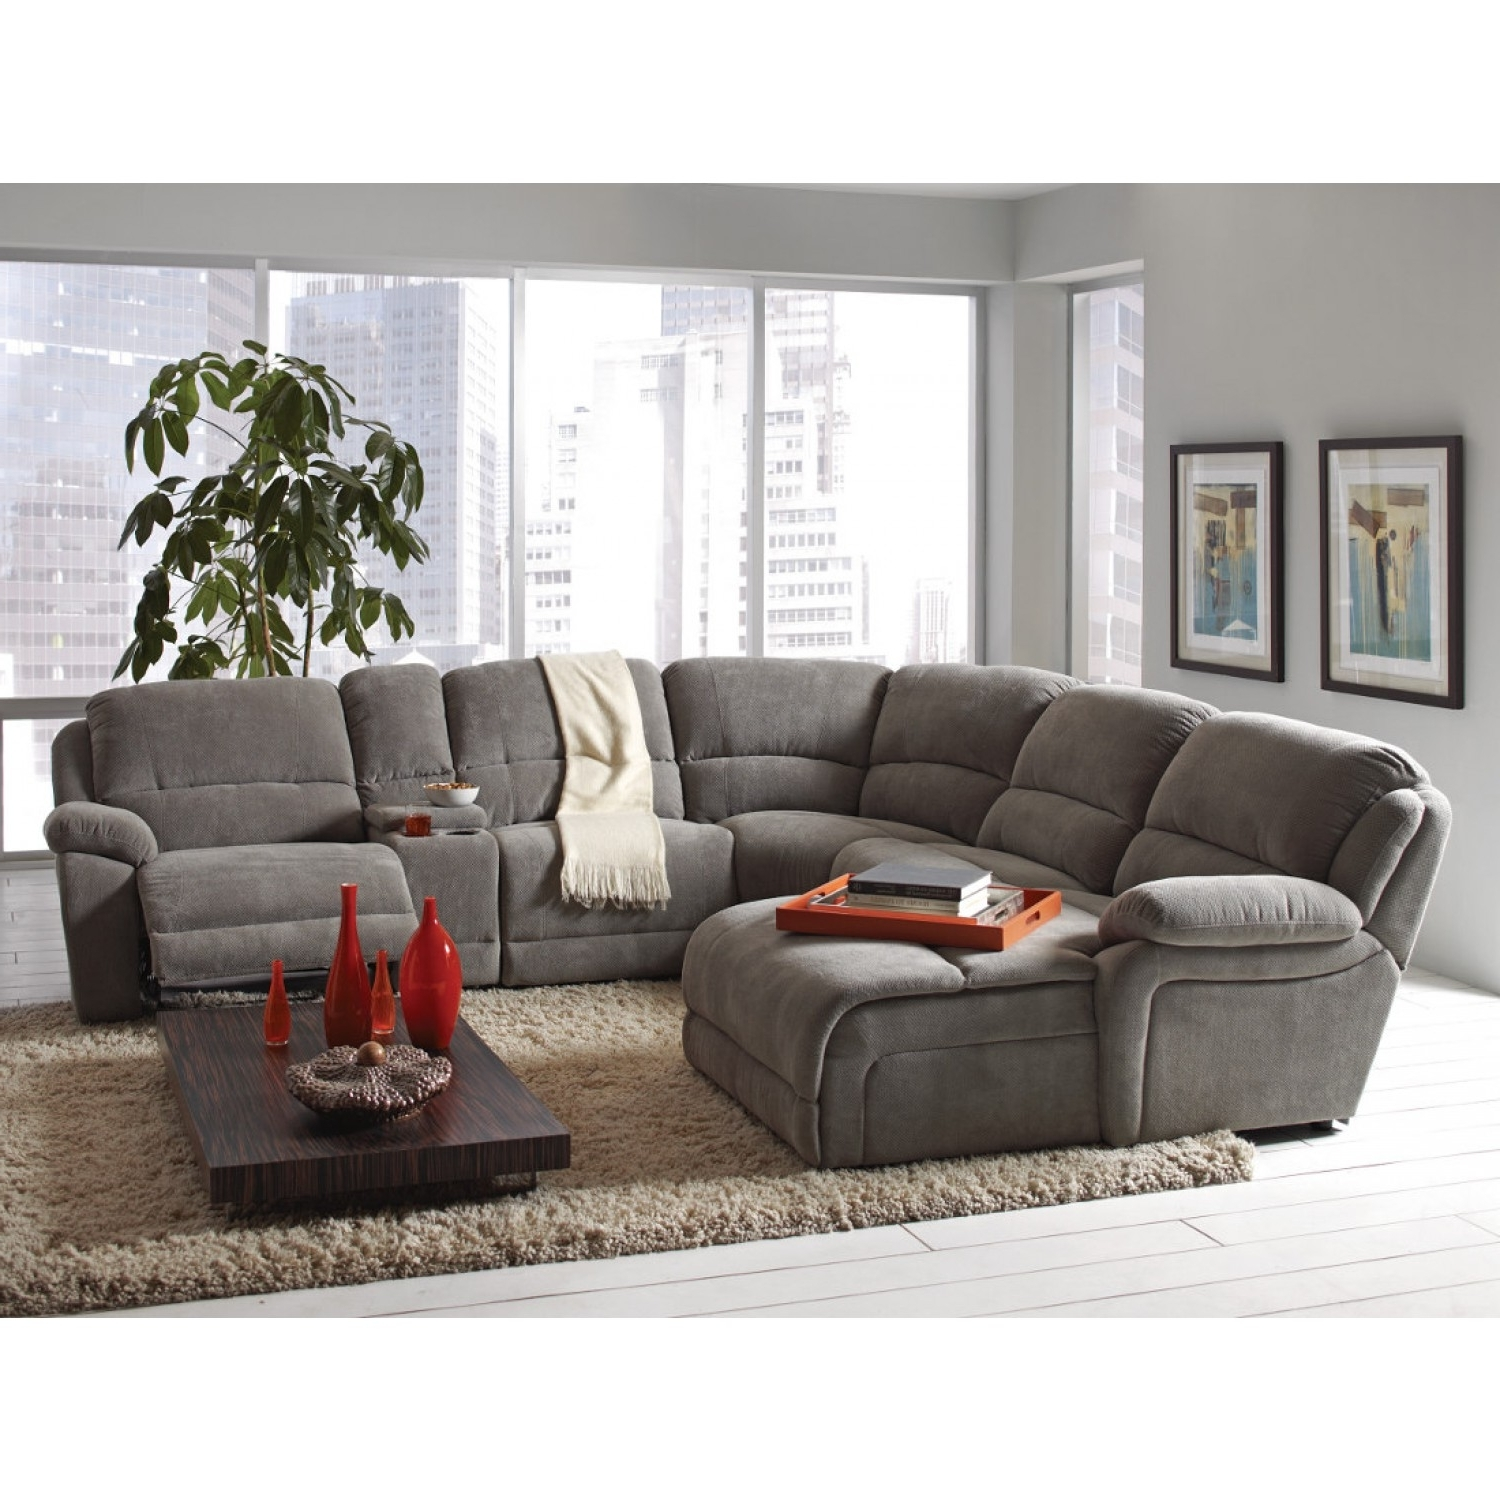 Layaway Sectional Sofas In Recent Coaster Mackenzie Silver 6 Piece Reclining Sectional Sofa With (View 12 of 15)